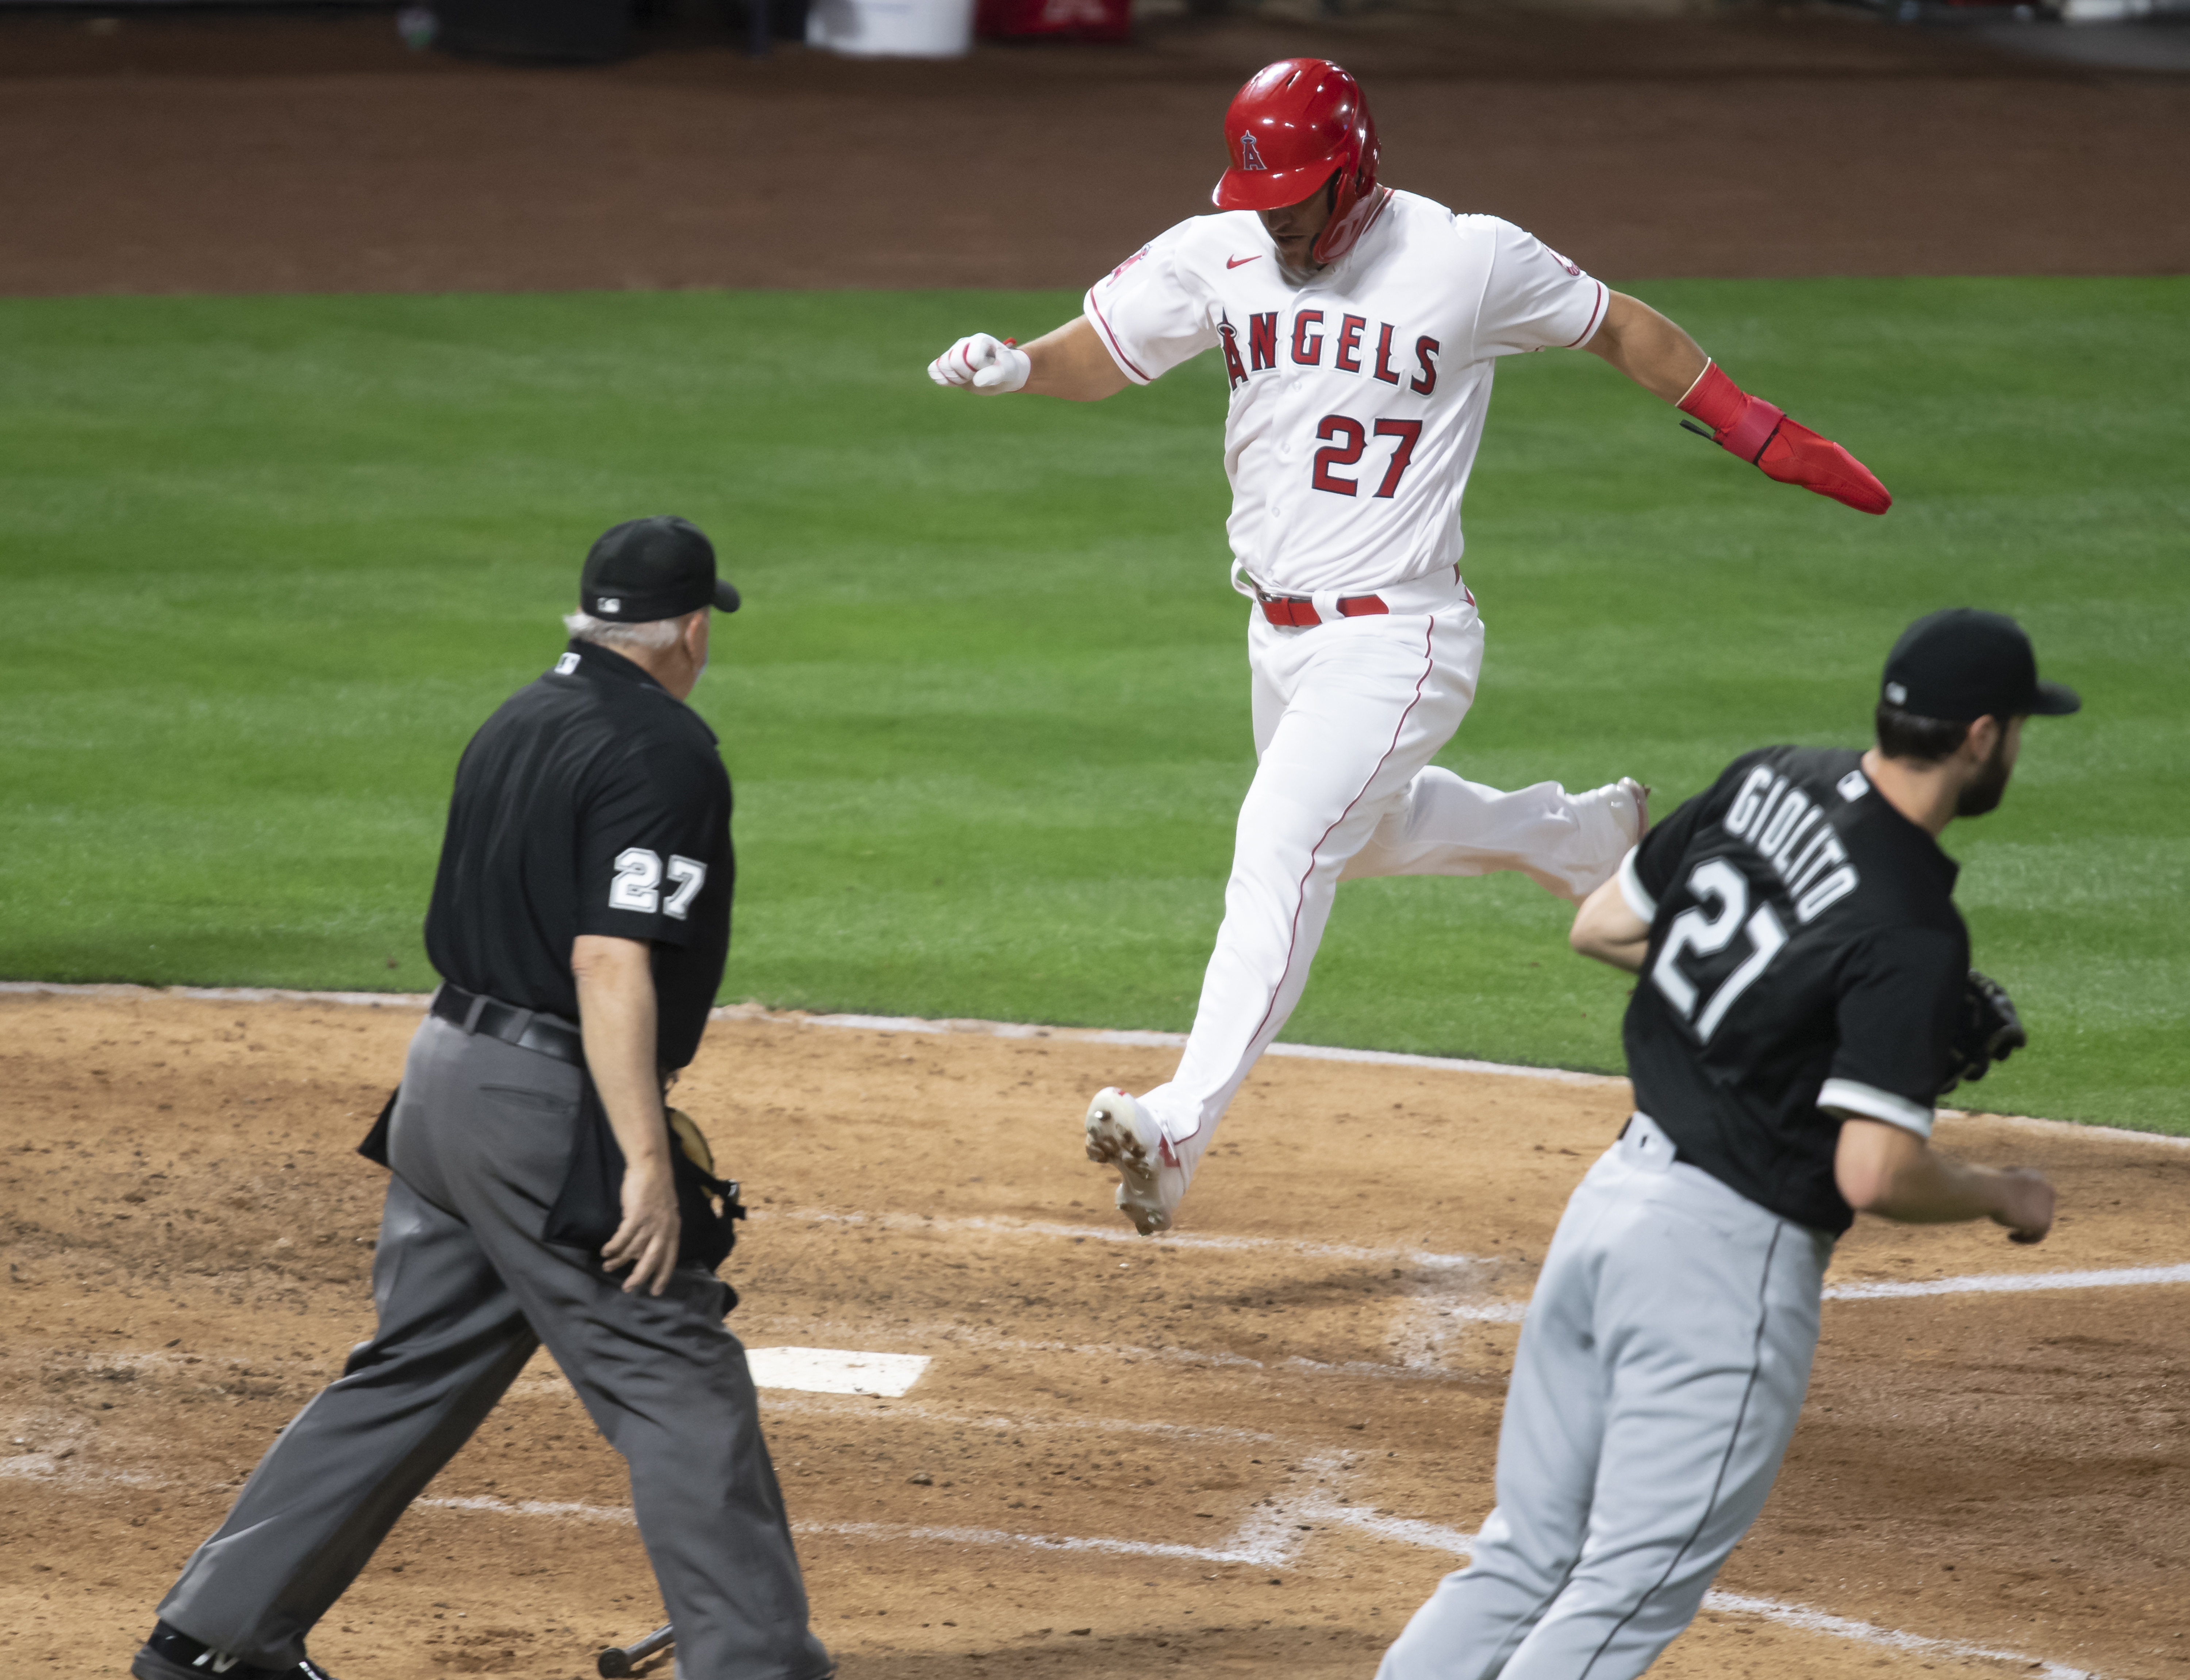 Angels Defeat White Sox In Season Opener